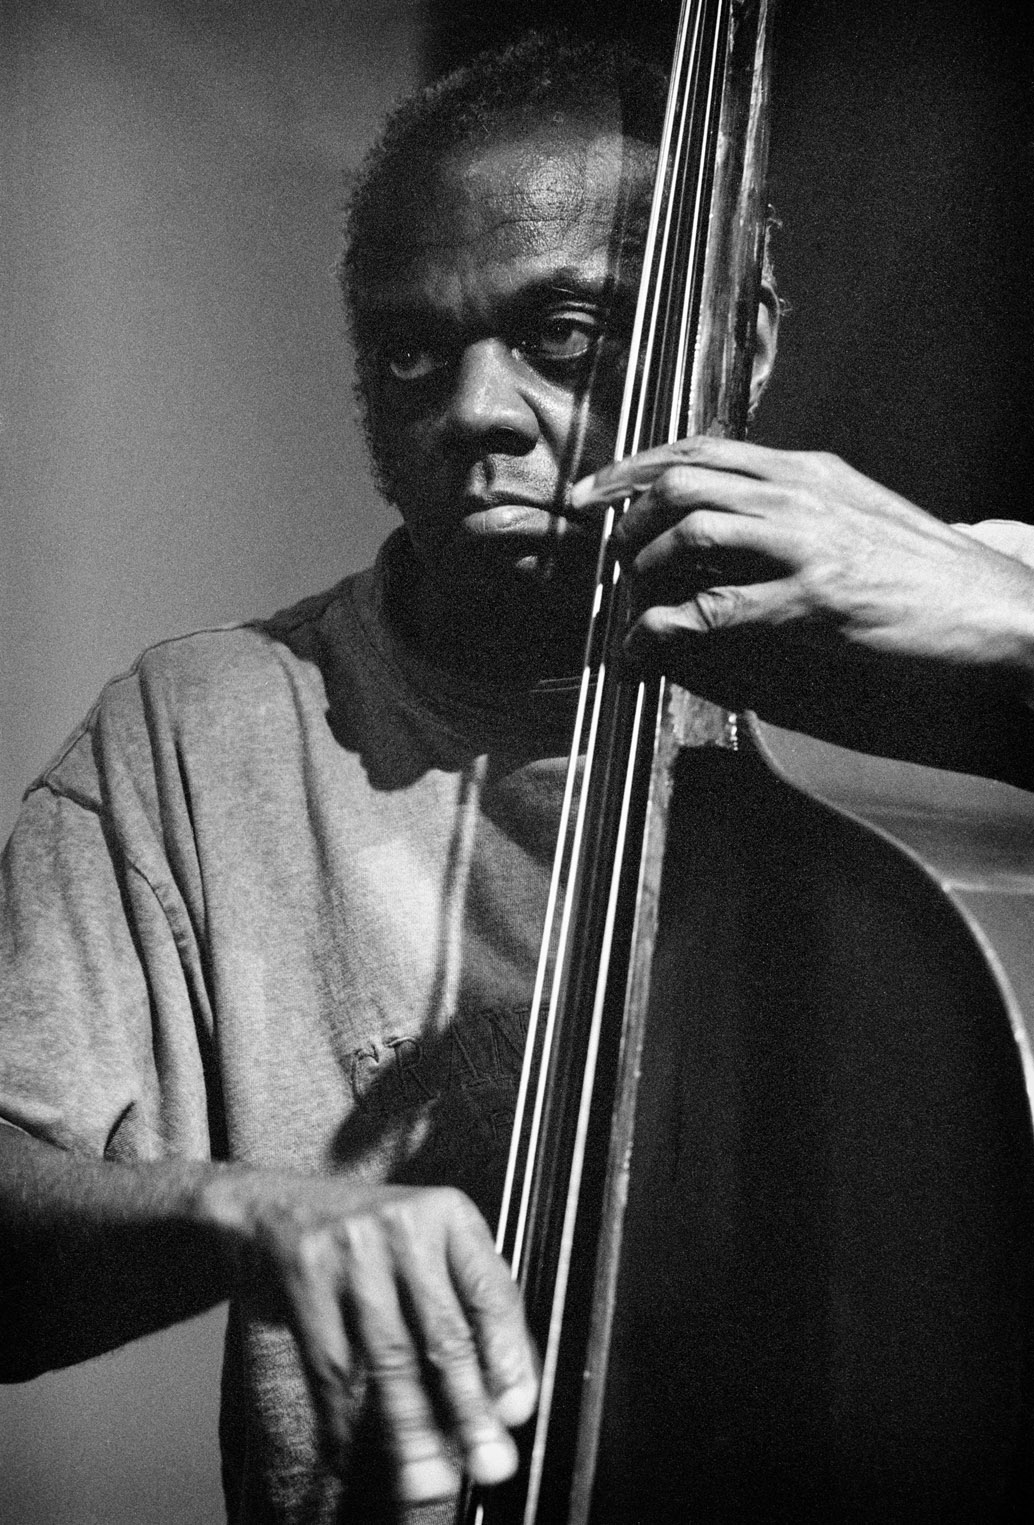 Henry Grimes Rehearsing at the Jazz Bakery